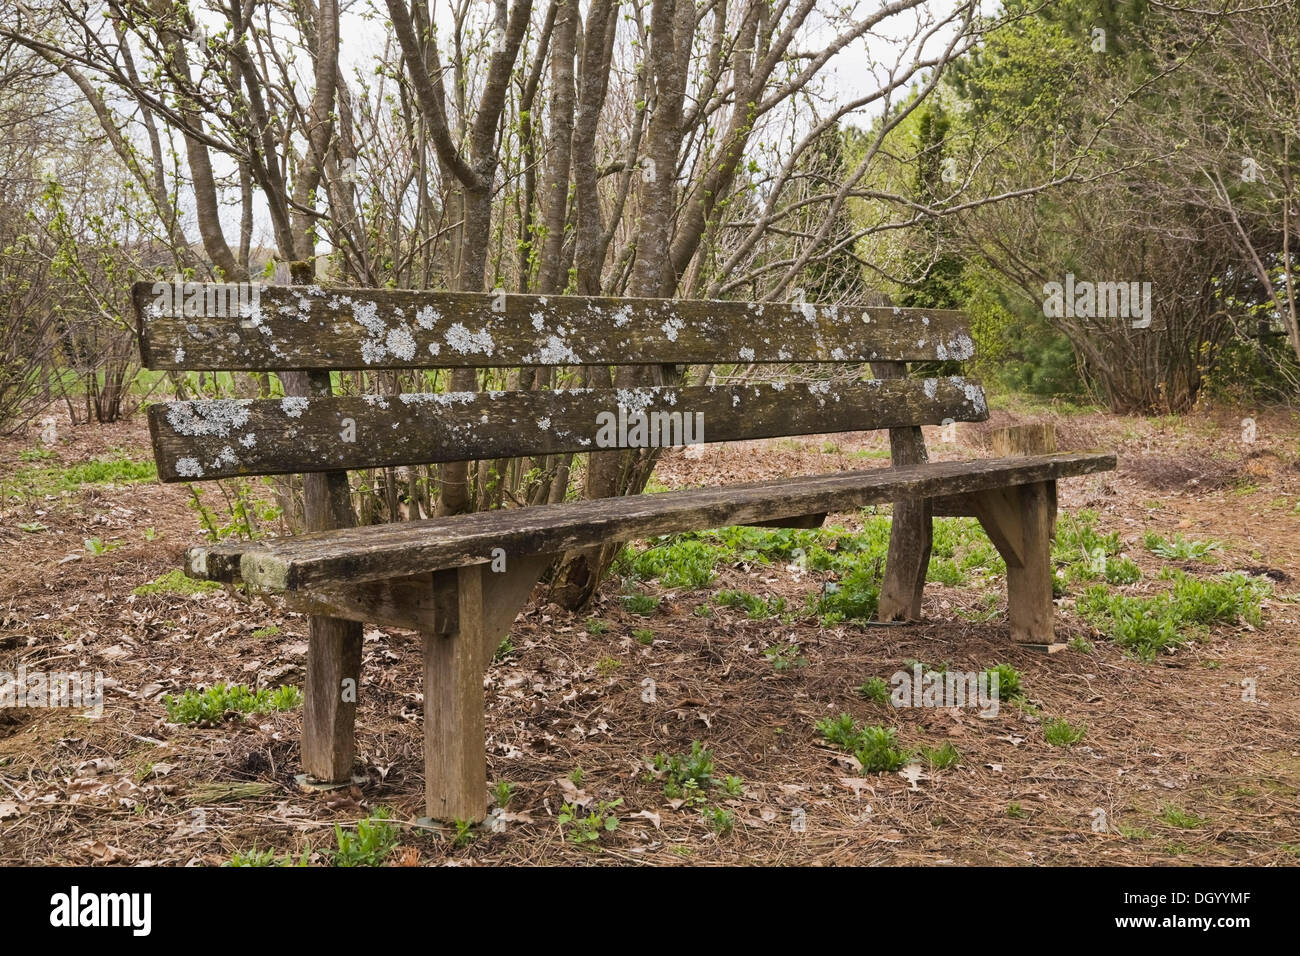 """An old wooden bench in the """"Jardin du Grand Portage"""" garden in spring, Saint-Didace, Lanaudiere, Quebec, Canada Stock Photo"""